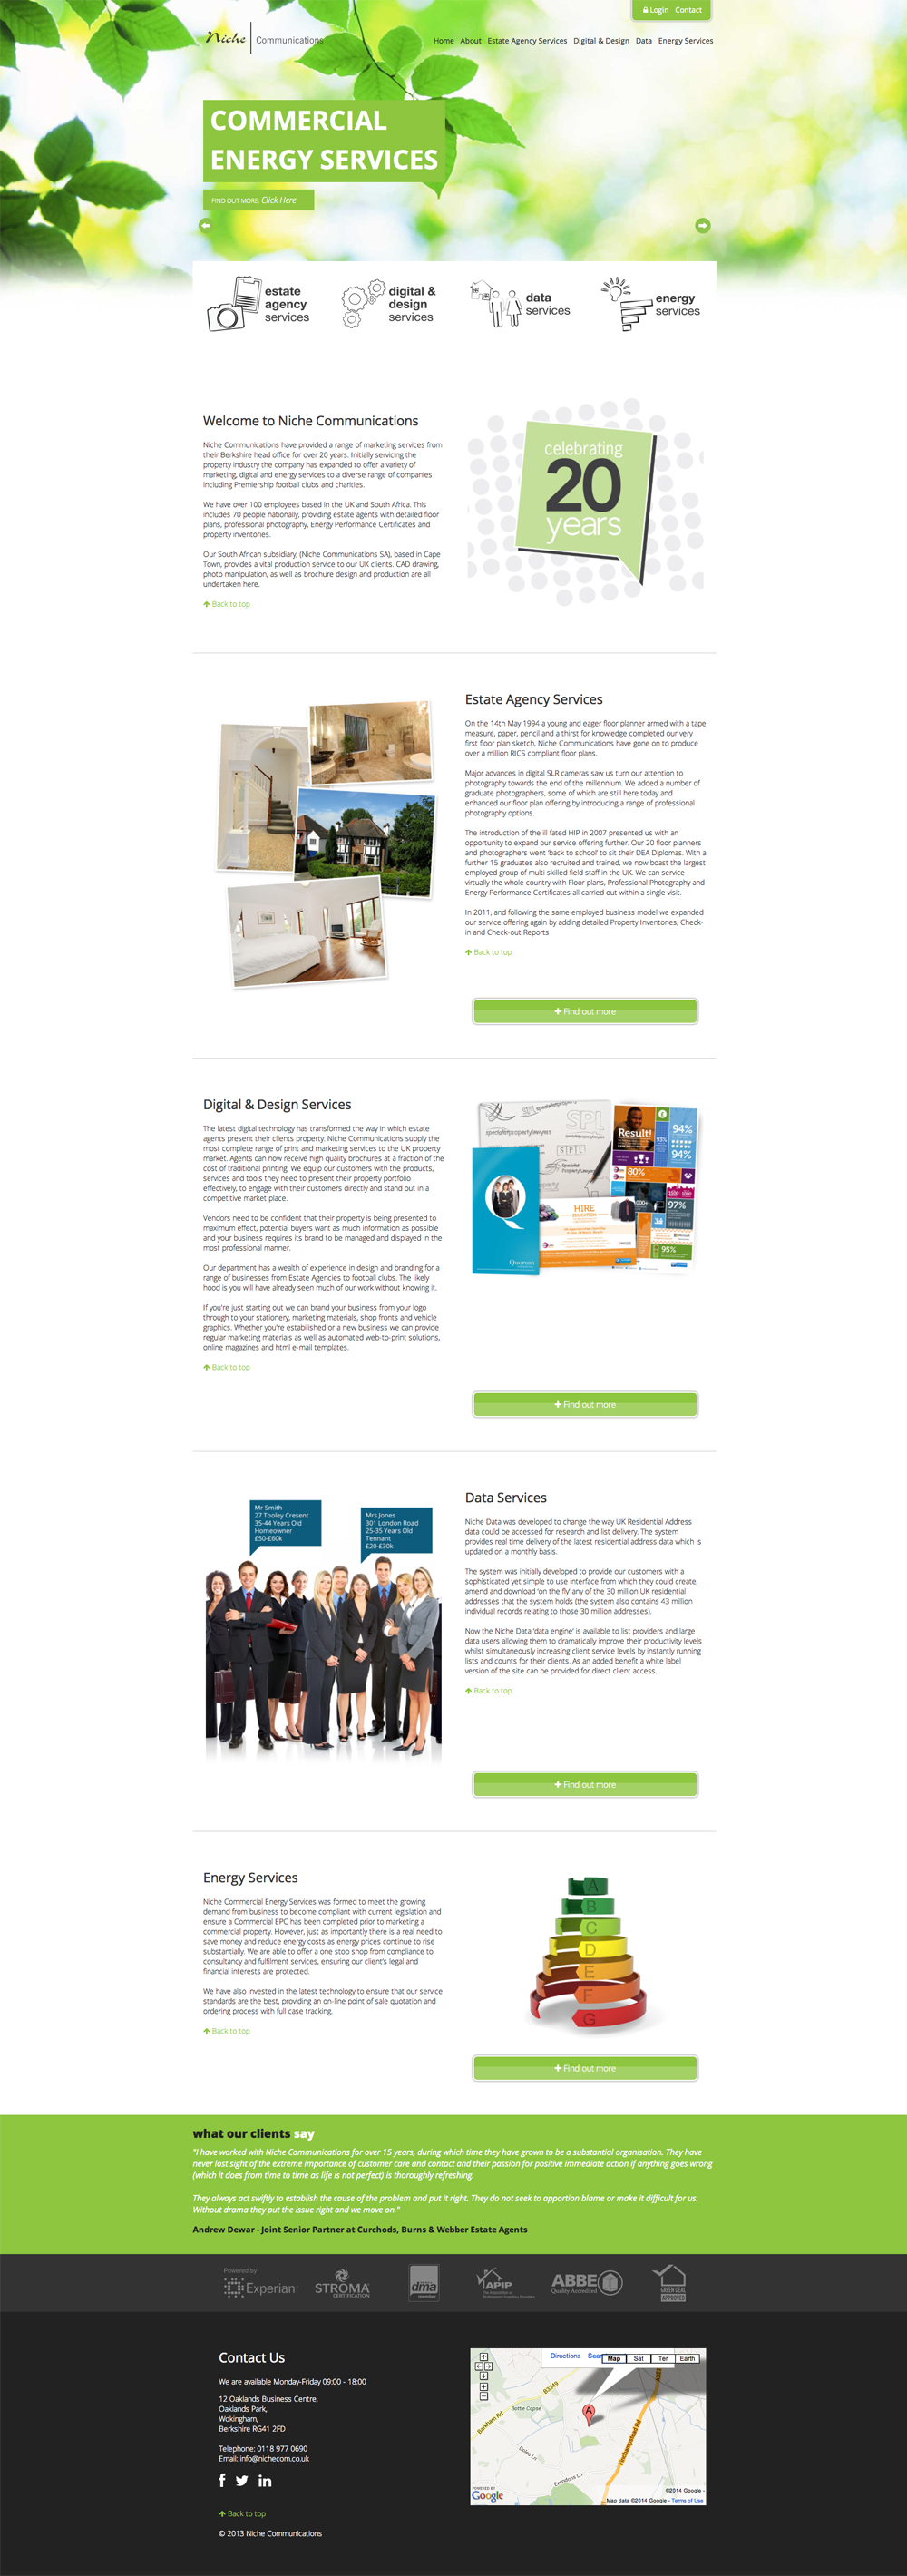 Full length view of the homepage of the desktop version Niche Communications responsive website.